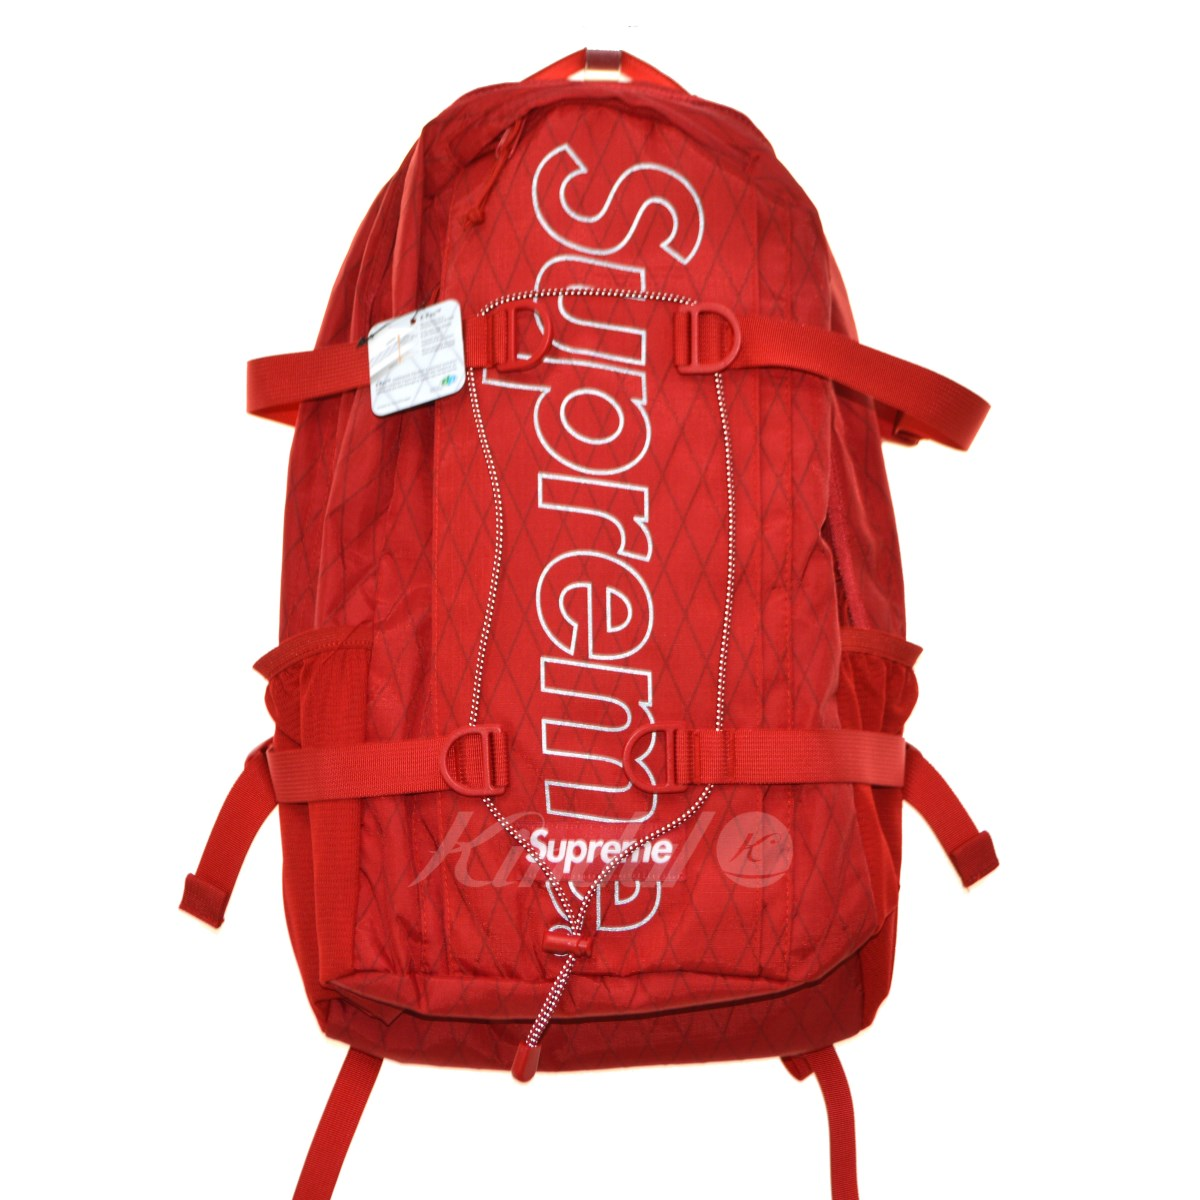 2bbe20a18290 【中古】SUPREME 18AW Back Pack バックパック レッド 【送料無料】 【171018